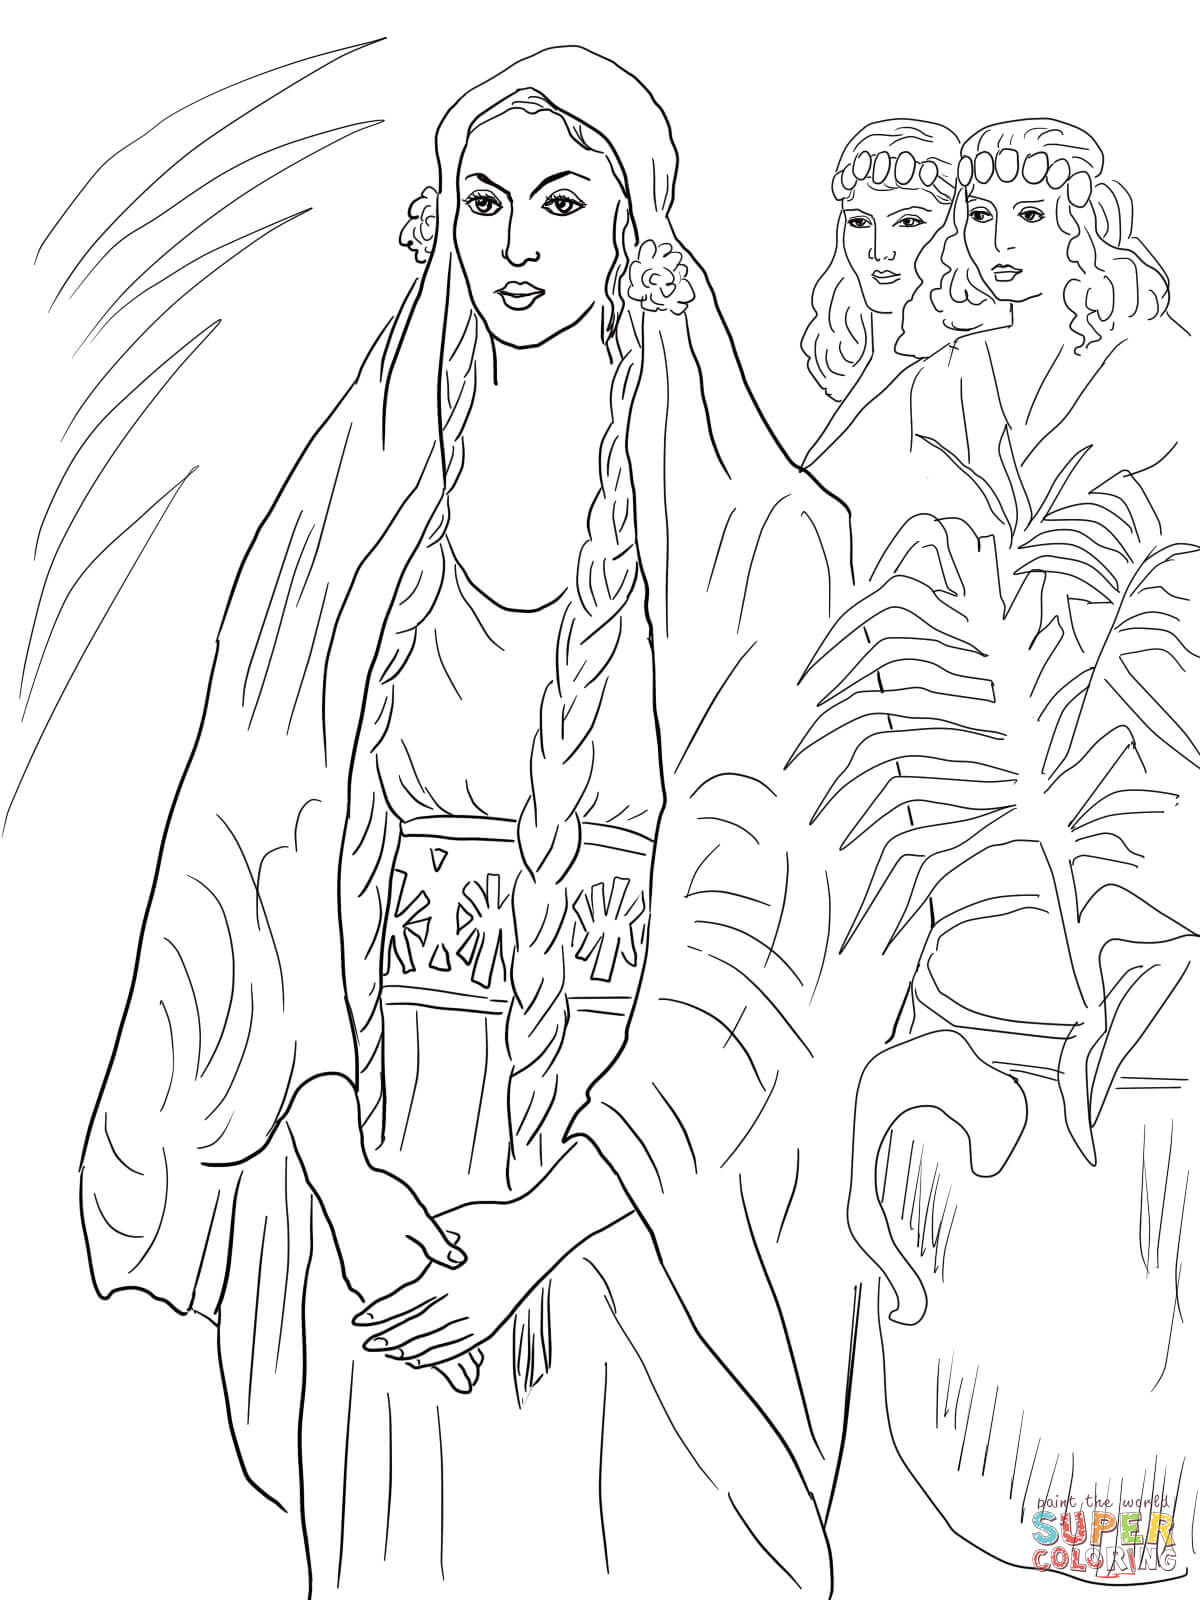 Esther The Queen Coloring Page Free Printable Coloring Pages